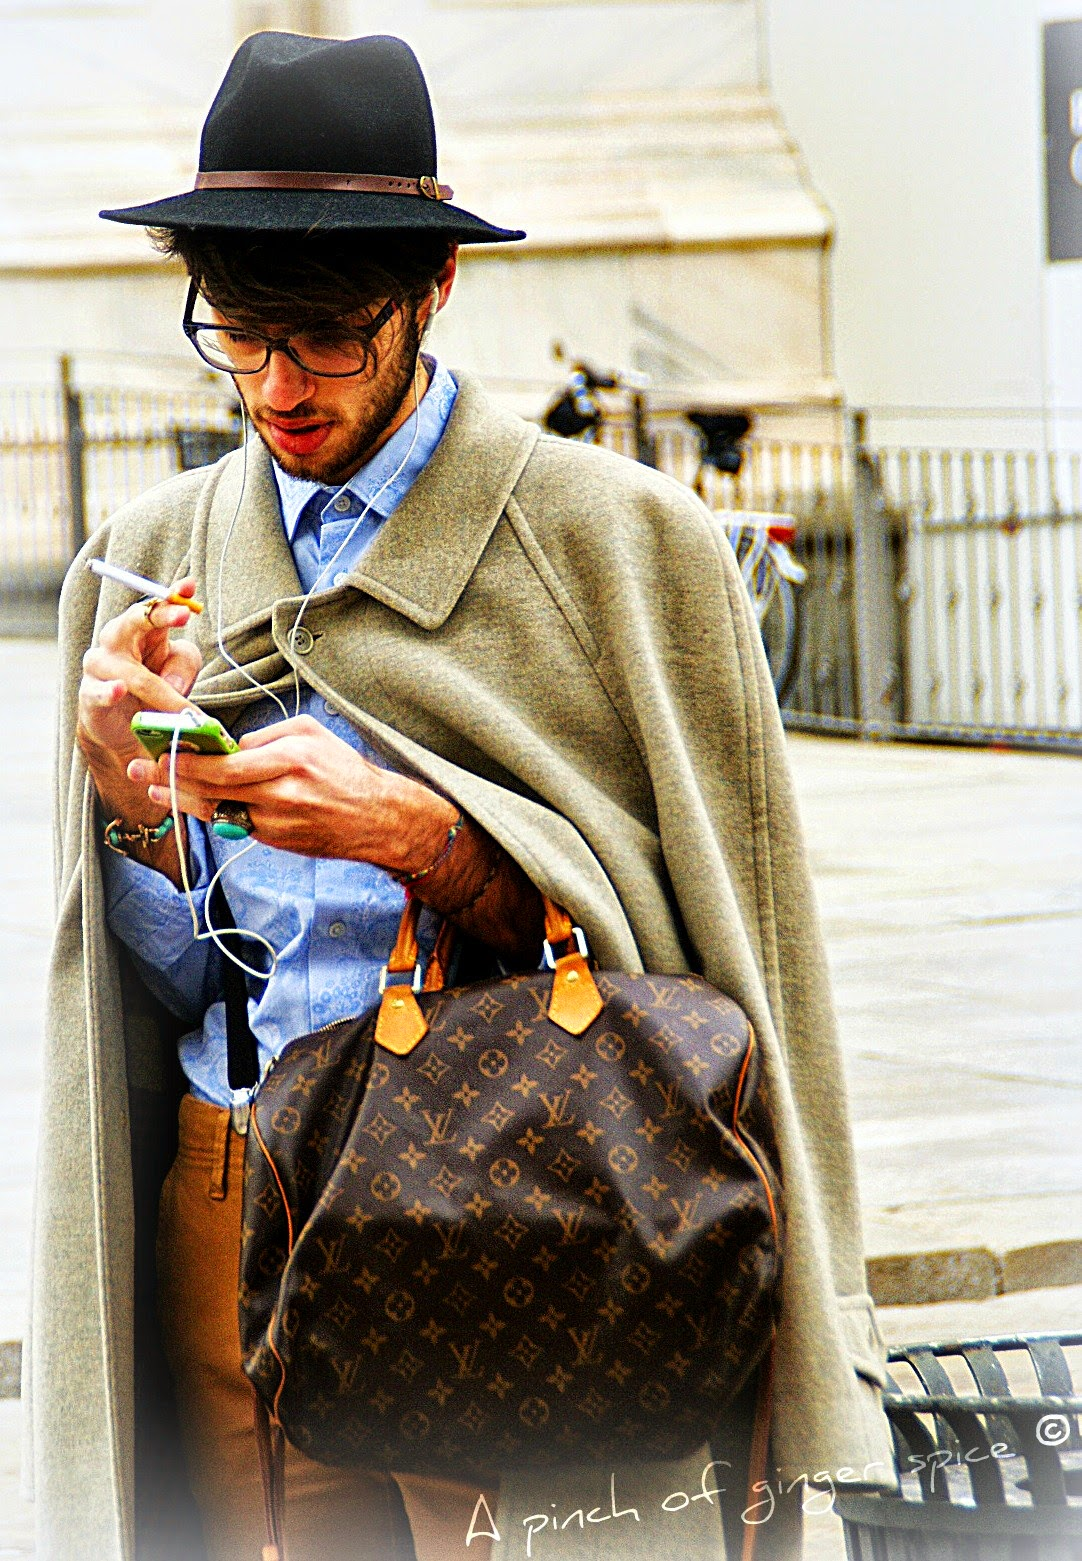 Milano Fashion Week 2015 street style